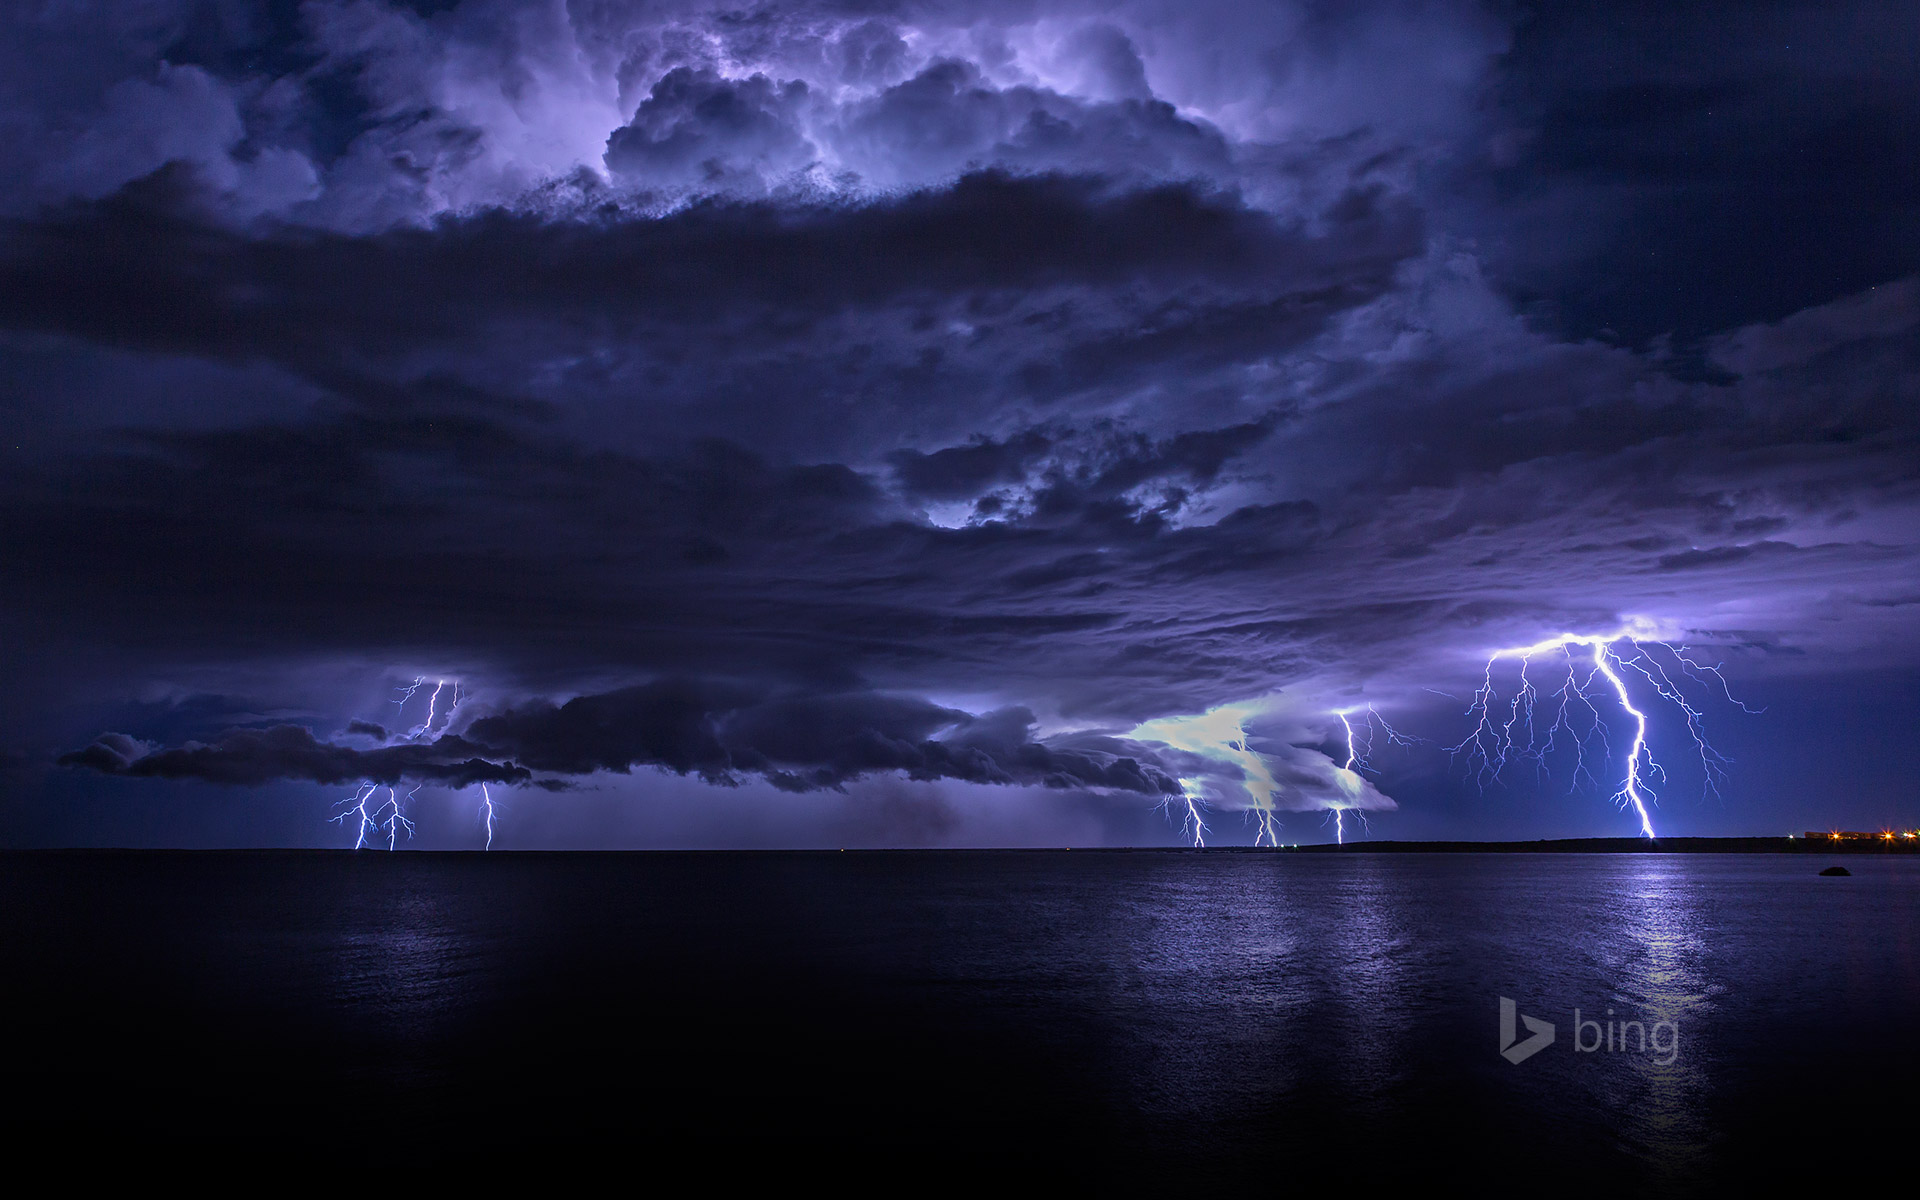 Lightning storm off Cooke Point, Port Hedland, Australia